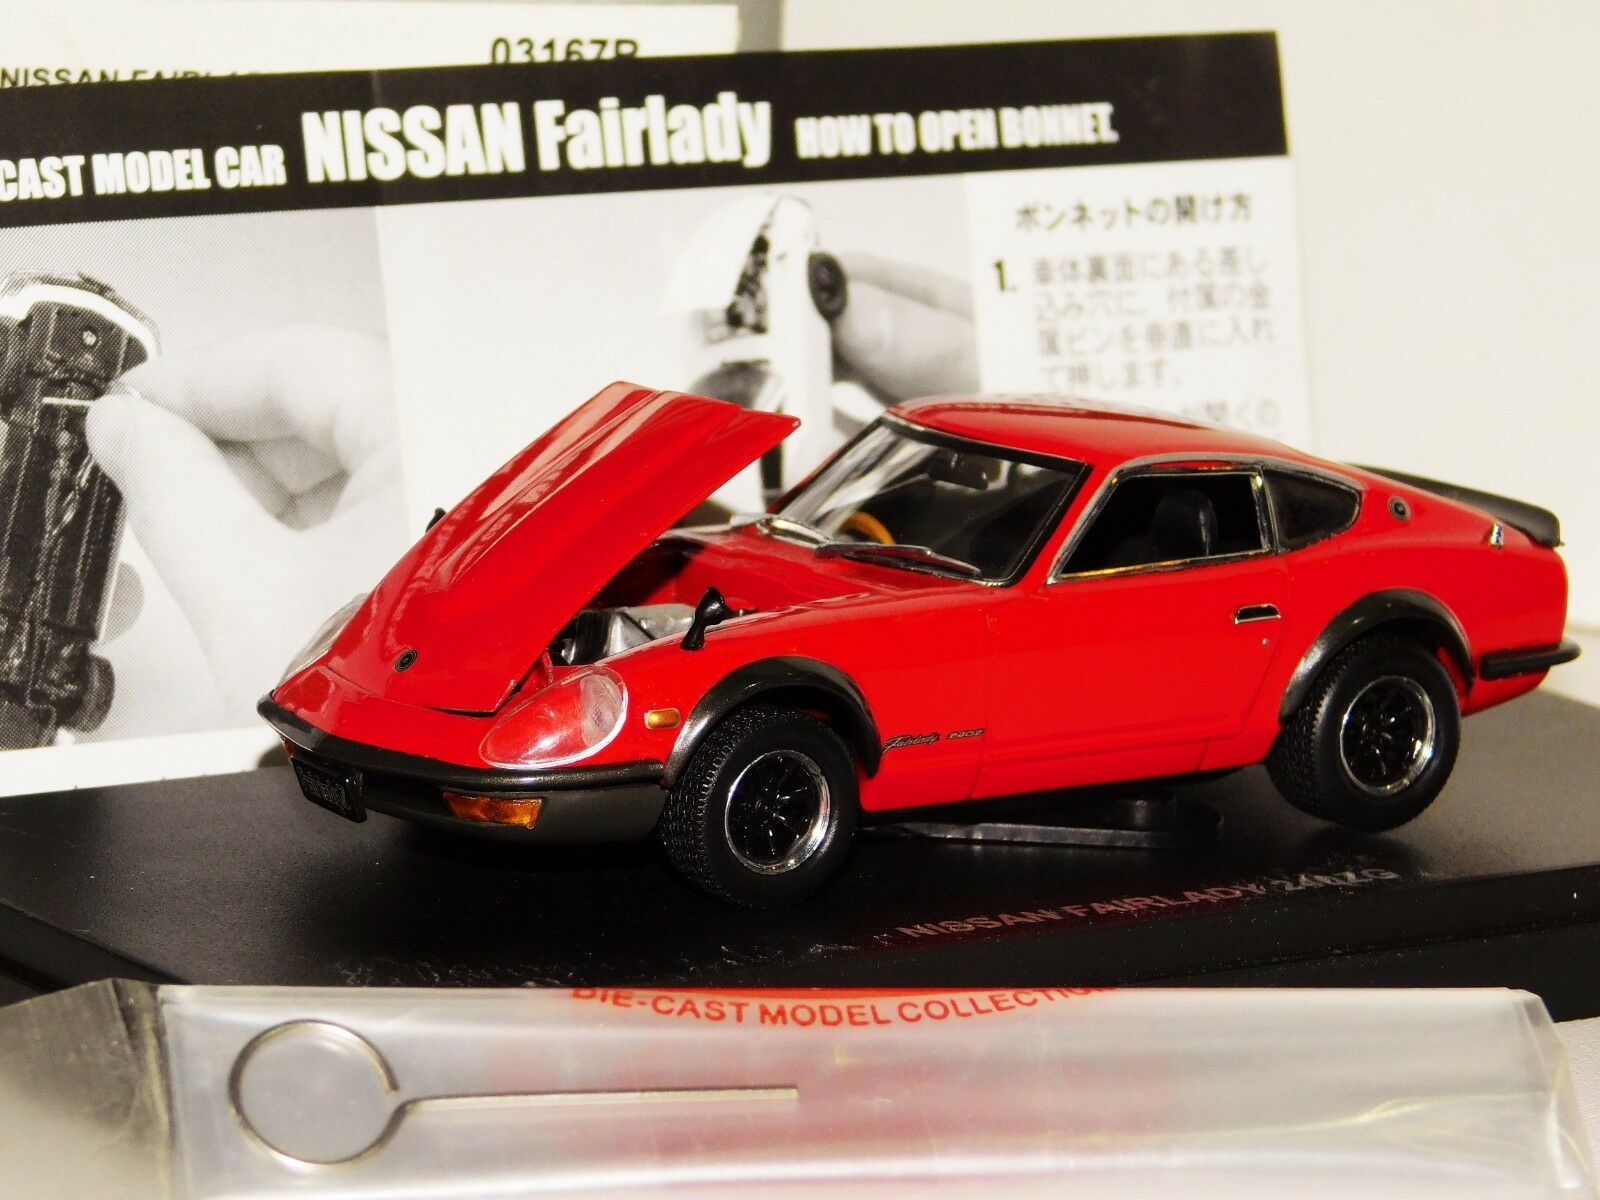 NISSAN 240Z G FAIRLADY RED WIDE WHEELS EDITION OPENING BONNET KYOSHO 03167R 1 43